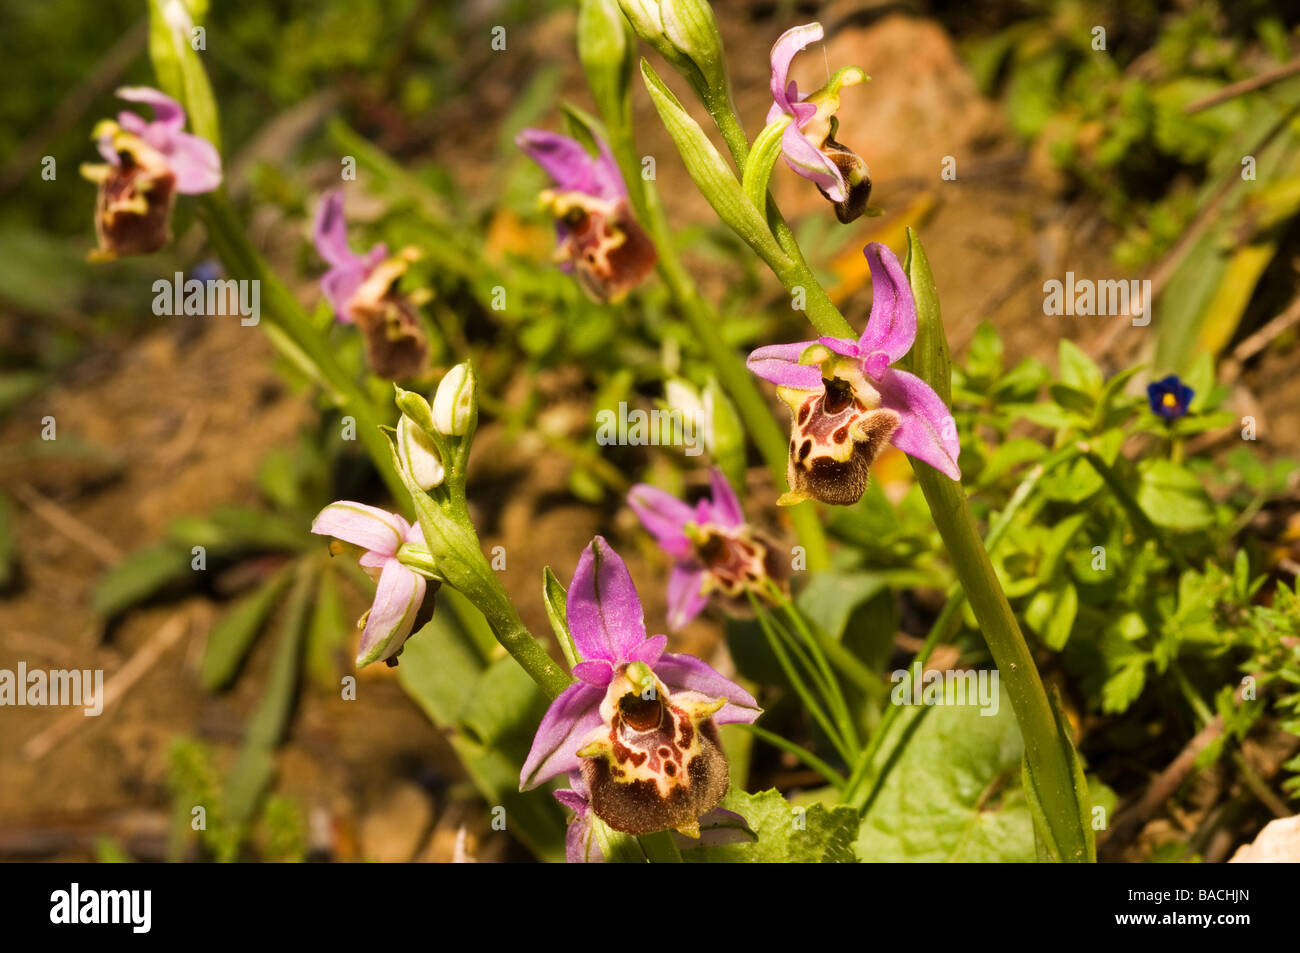 Bee orchids, Orchis scolopax, Mugla Turkey April 2009 - Stock Image